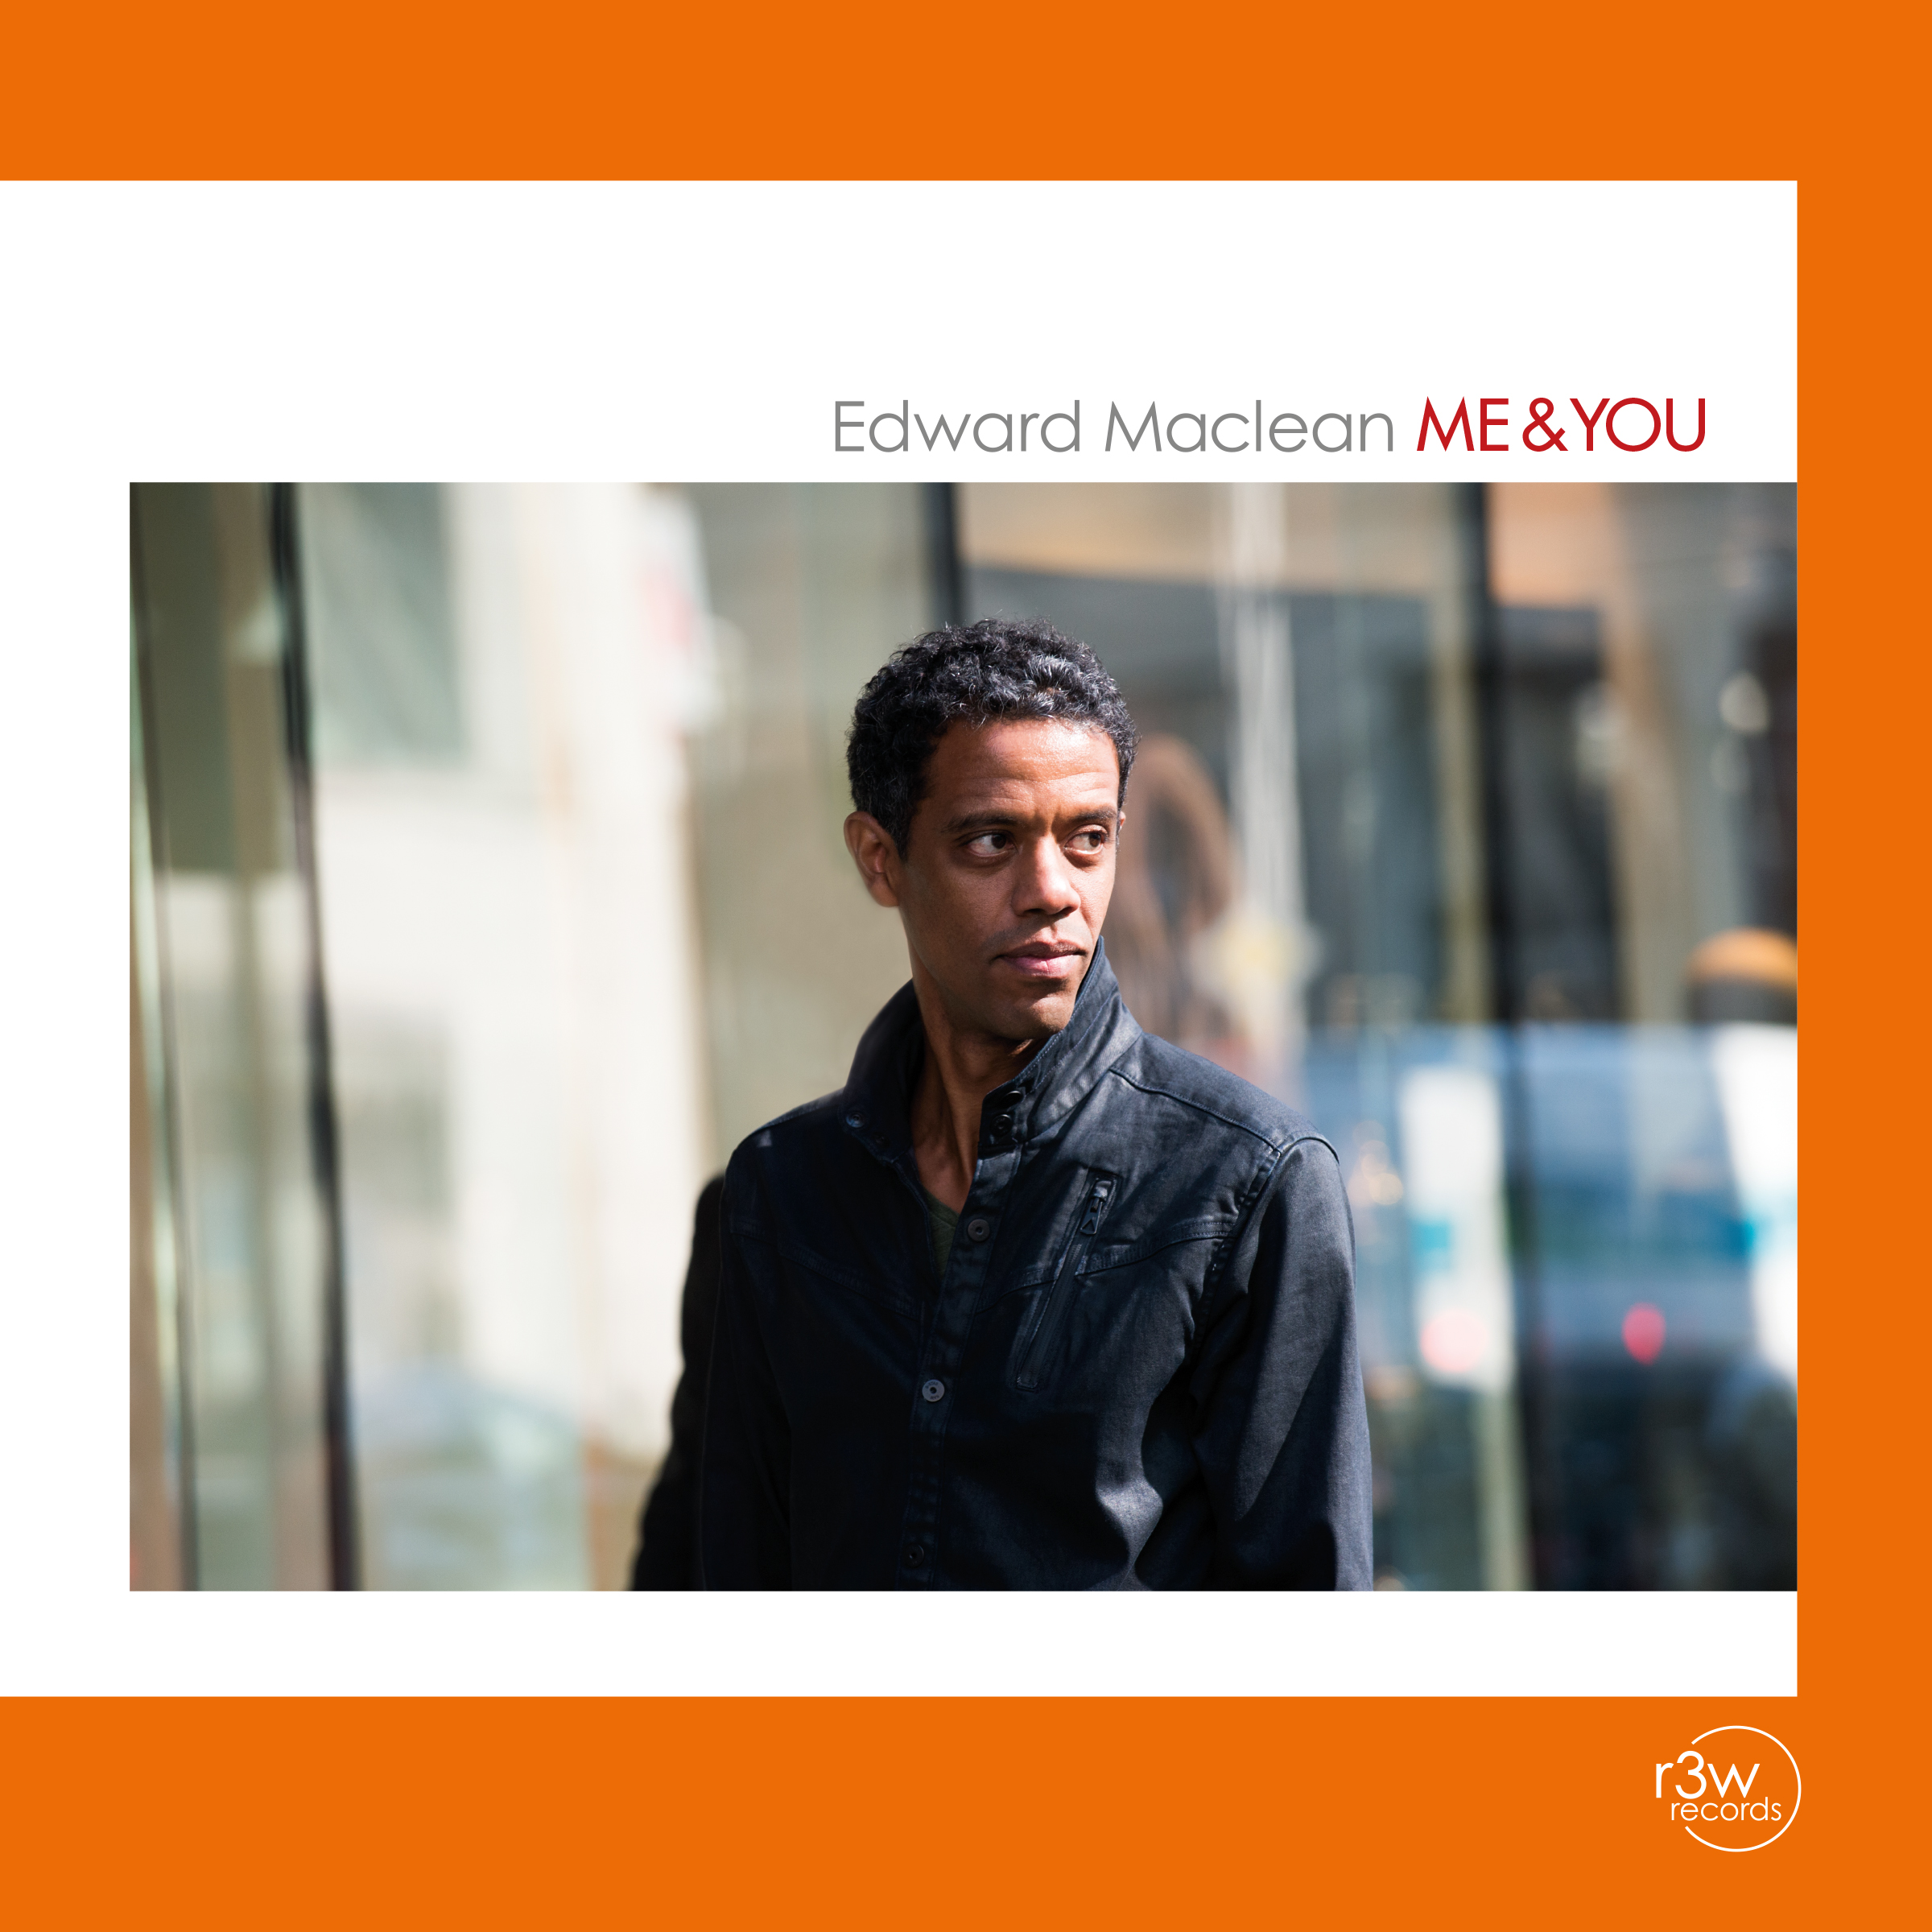 Edward Maclean: Me&You - r3w records 2017